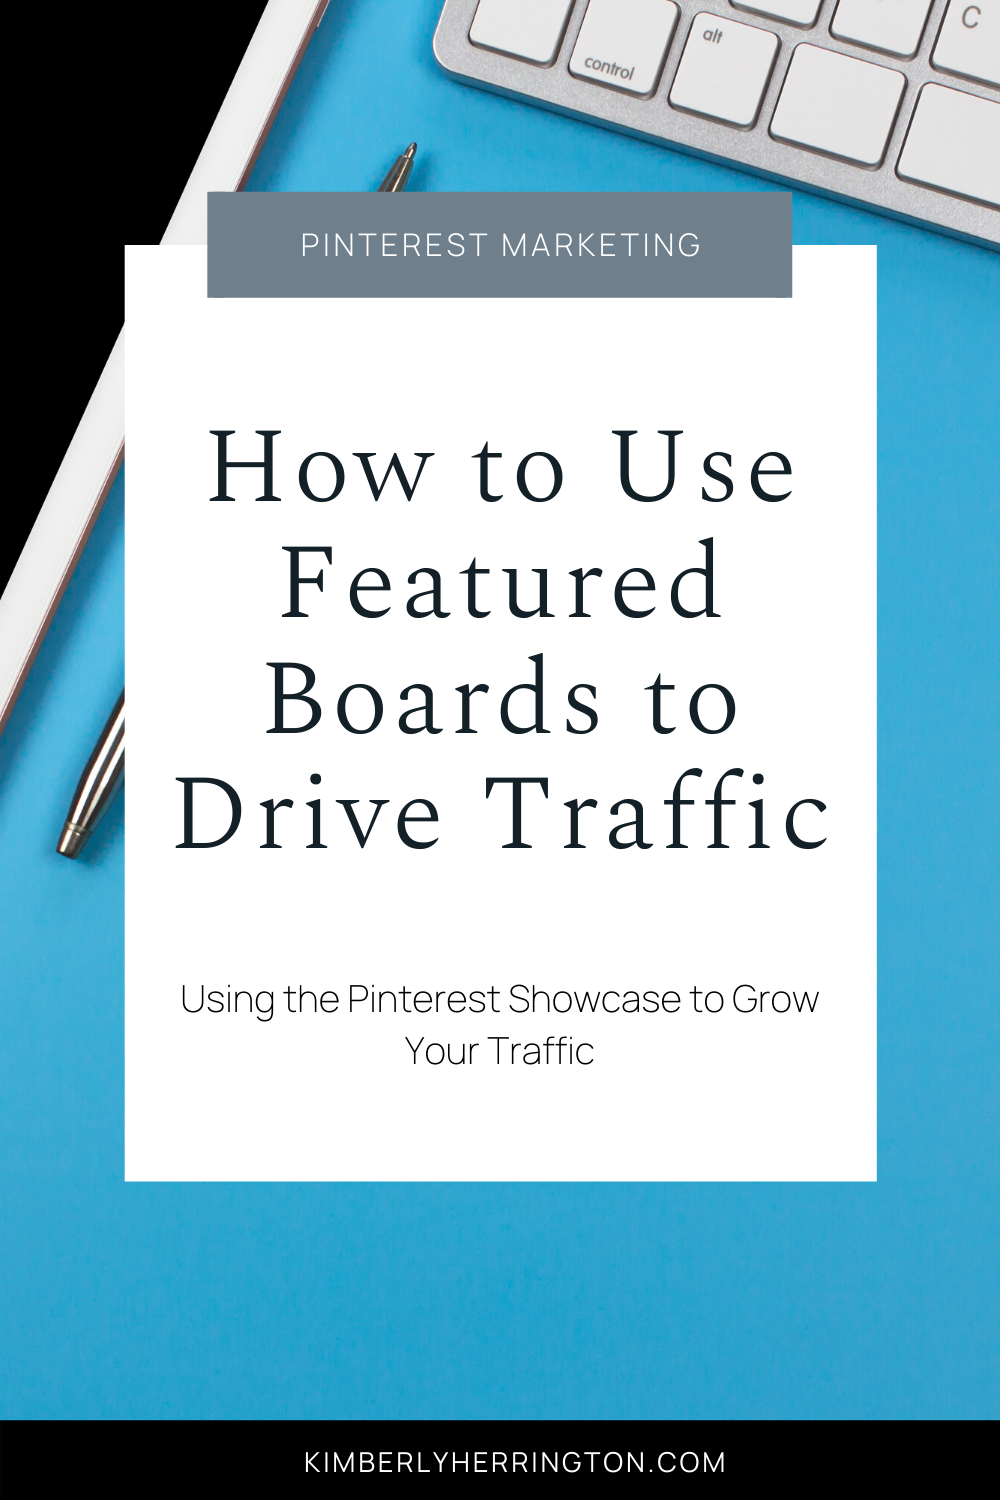 How to Make a Featured Board on Pinterest